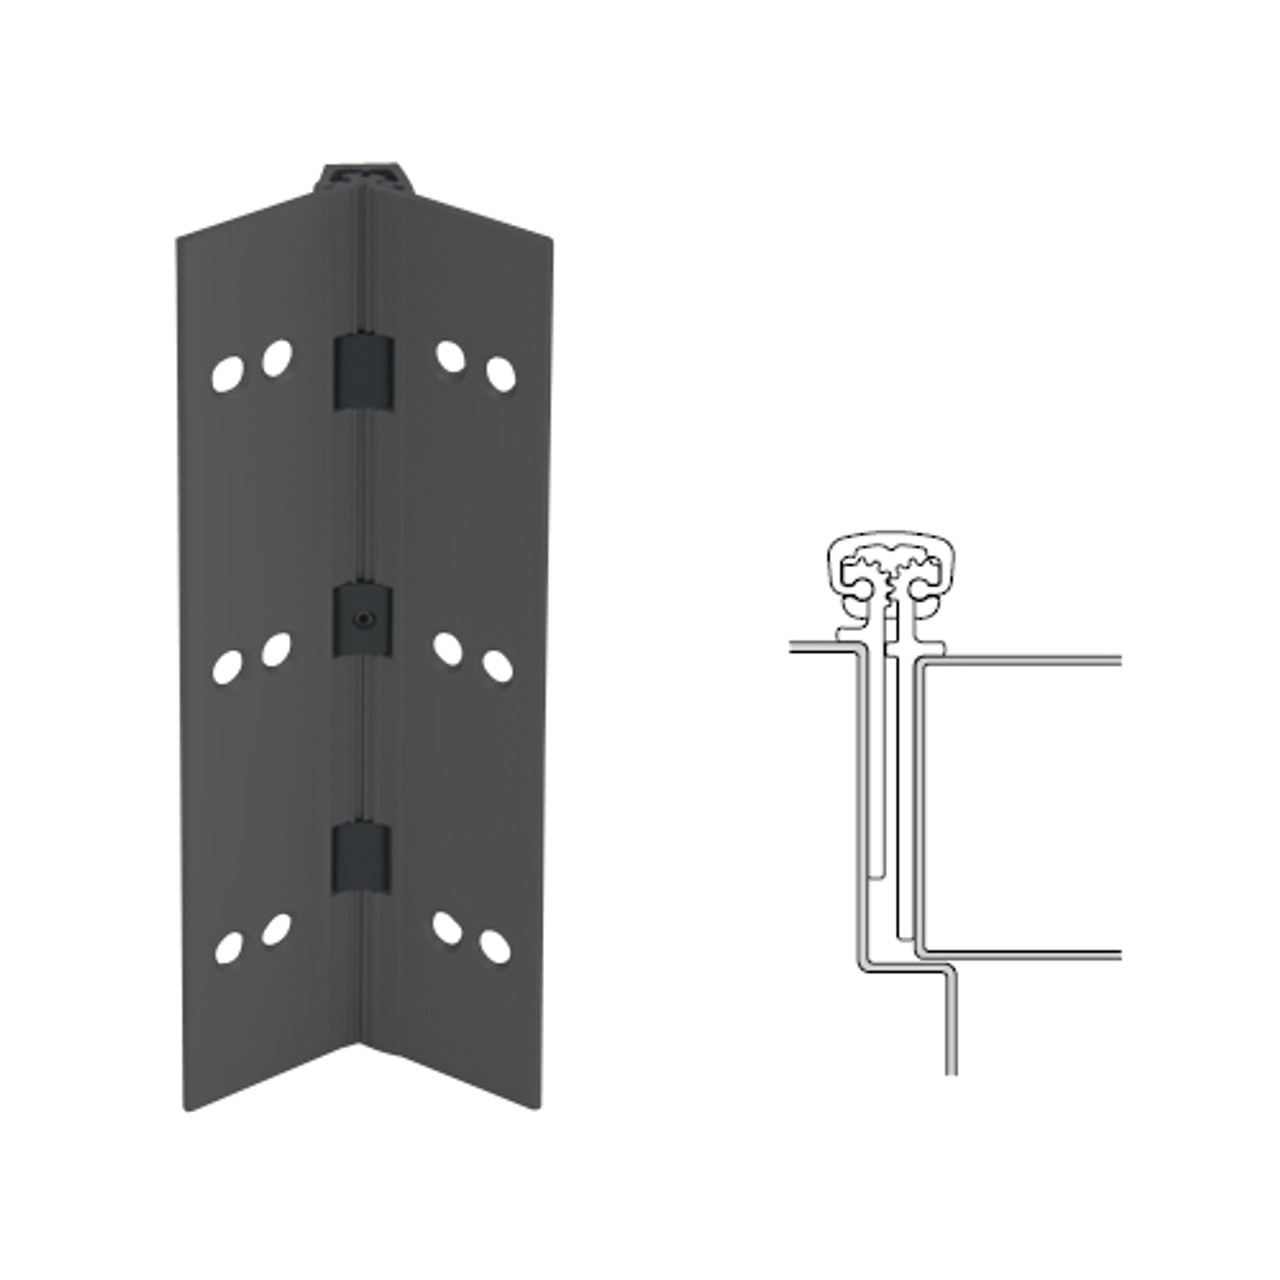 026XY-315AN-85-WD IVES Full Mortise Continuous Geared Hinges with Wood Screws in Anodized Black